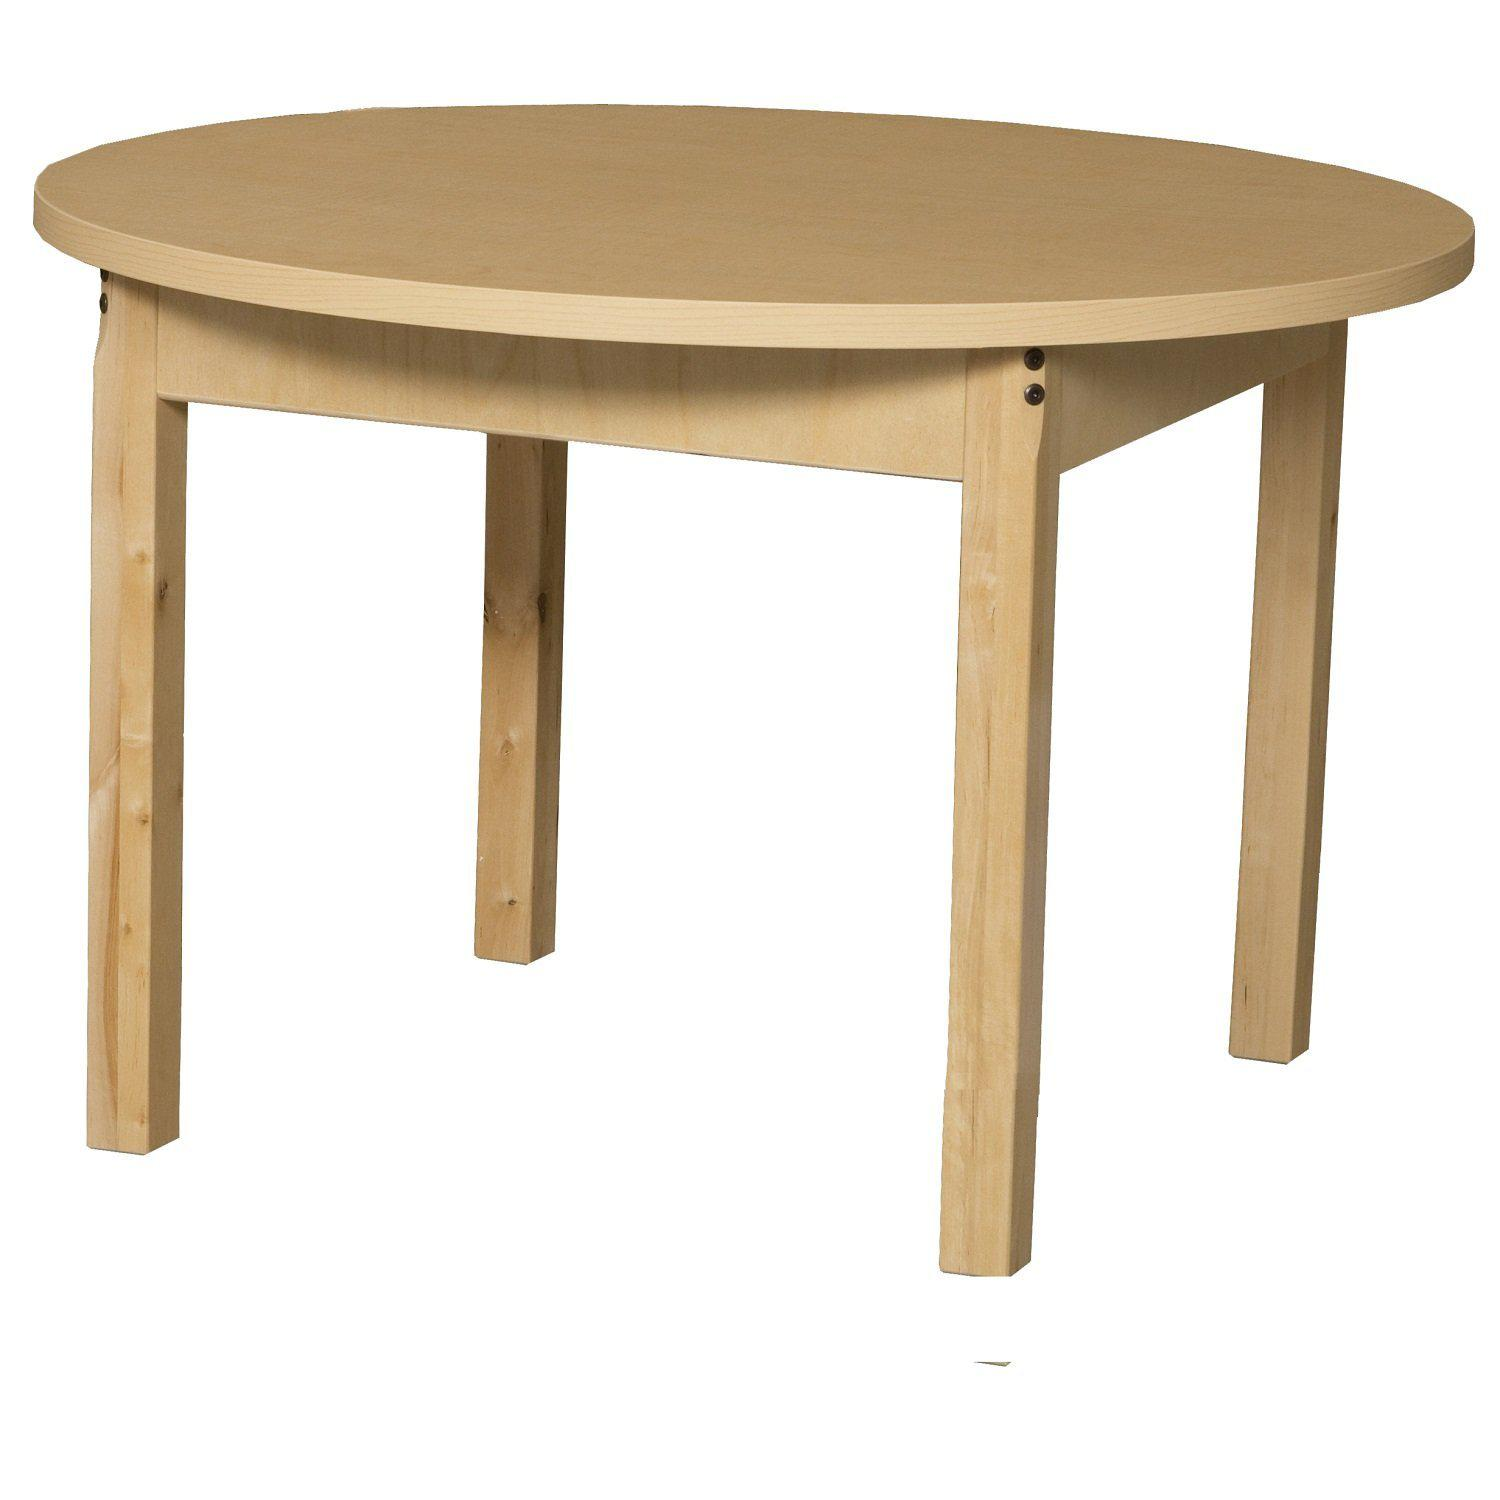 "Wood Designs High Pressure Laminate Activity Tables-Tables-36"" Round-14"" Fixed-"